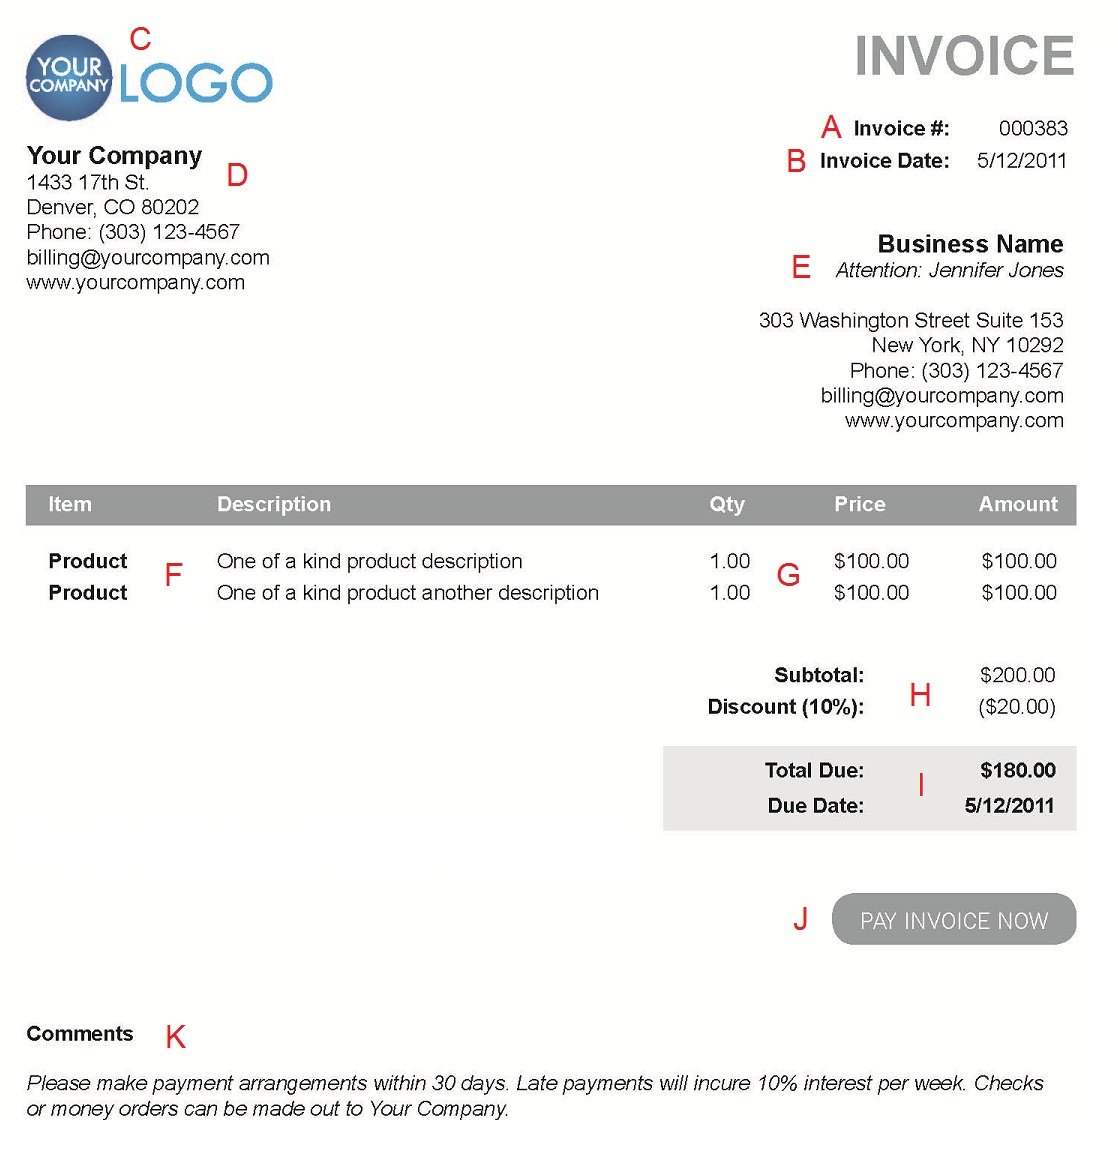 Homewouldcom  Unusual The  Different Sections Of An Electronic Payment Invoice With Interesting A  With Awesome Fake Receipt Creator Also Gross Receipts Tax Definition In Addition Google Mail Read Receipt And Miscellaneous Receipts As Well As Receipt App For Iphone Additionally Usps Certified Mail Return Receipt Requested From Paysimplecom With Homewouldcom  Interesting The  Different Sections Of An Electronic Payment Invoice With Awesome A  And Unusual Fake Receipt Creator Also Gross Receipts Tax Definition In Addition Google Mail Read Receipt From Paysimplecom